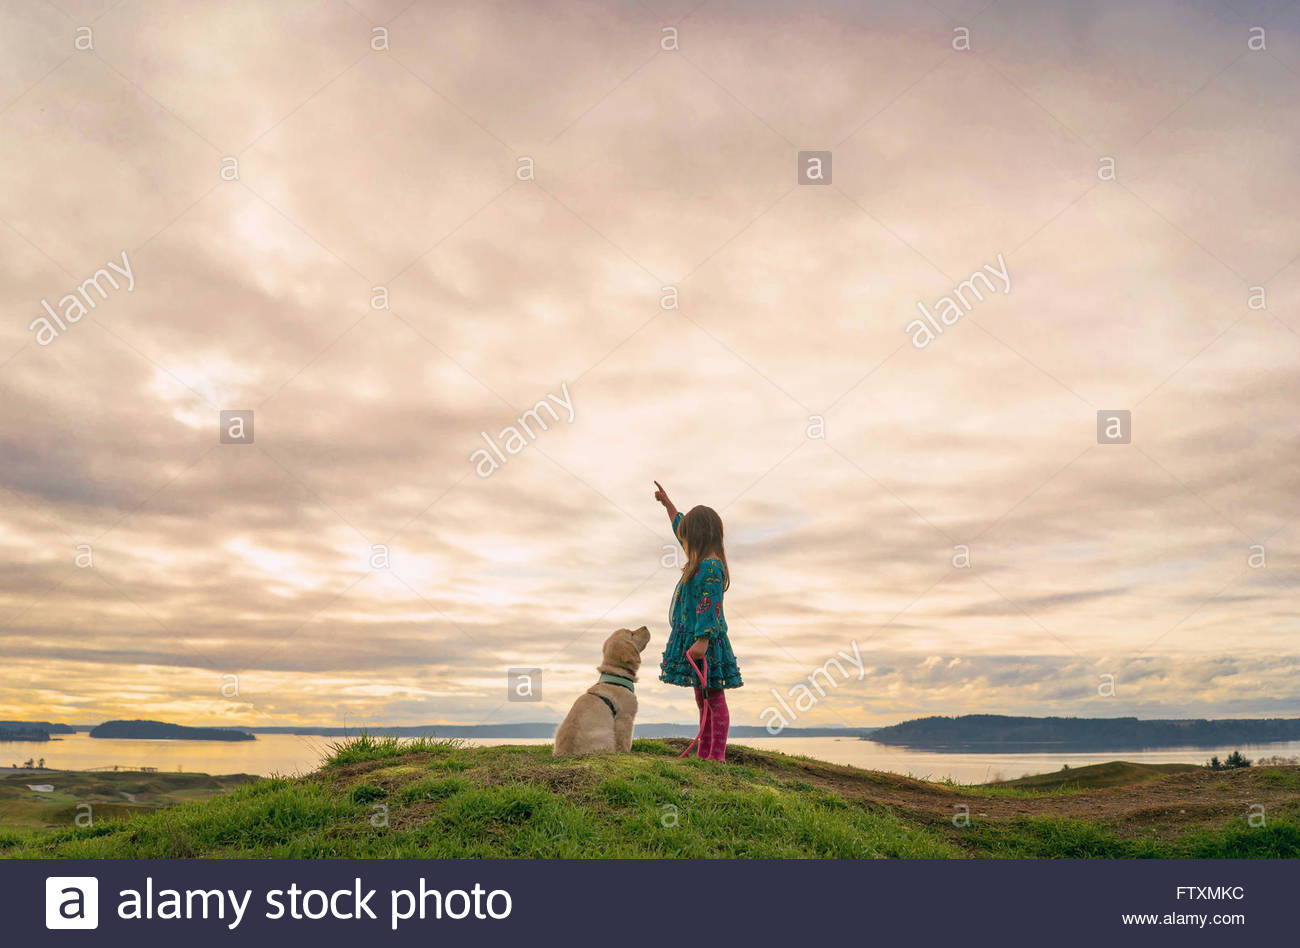 Young girl training golden retriever puppy dog - Stock Image